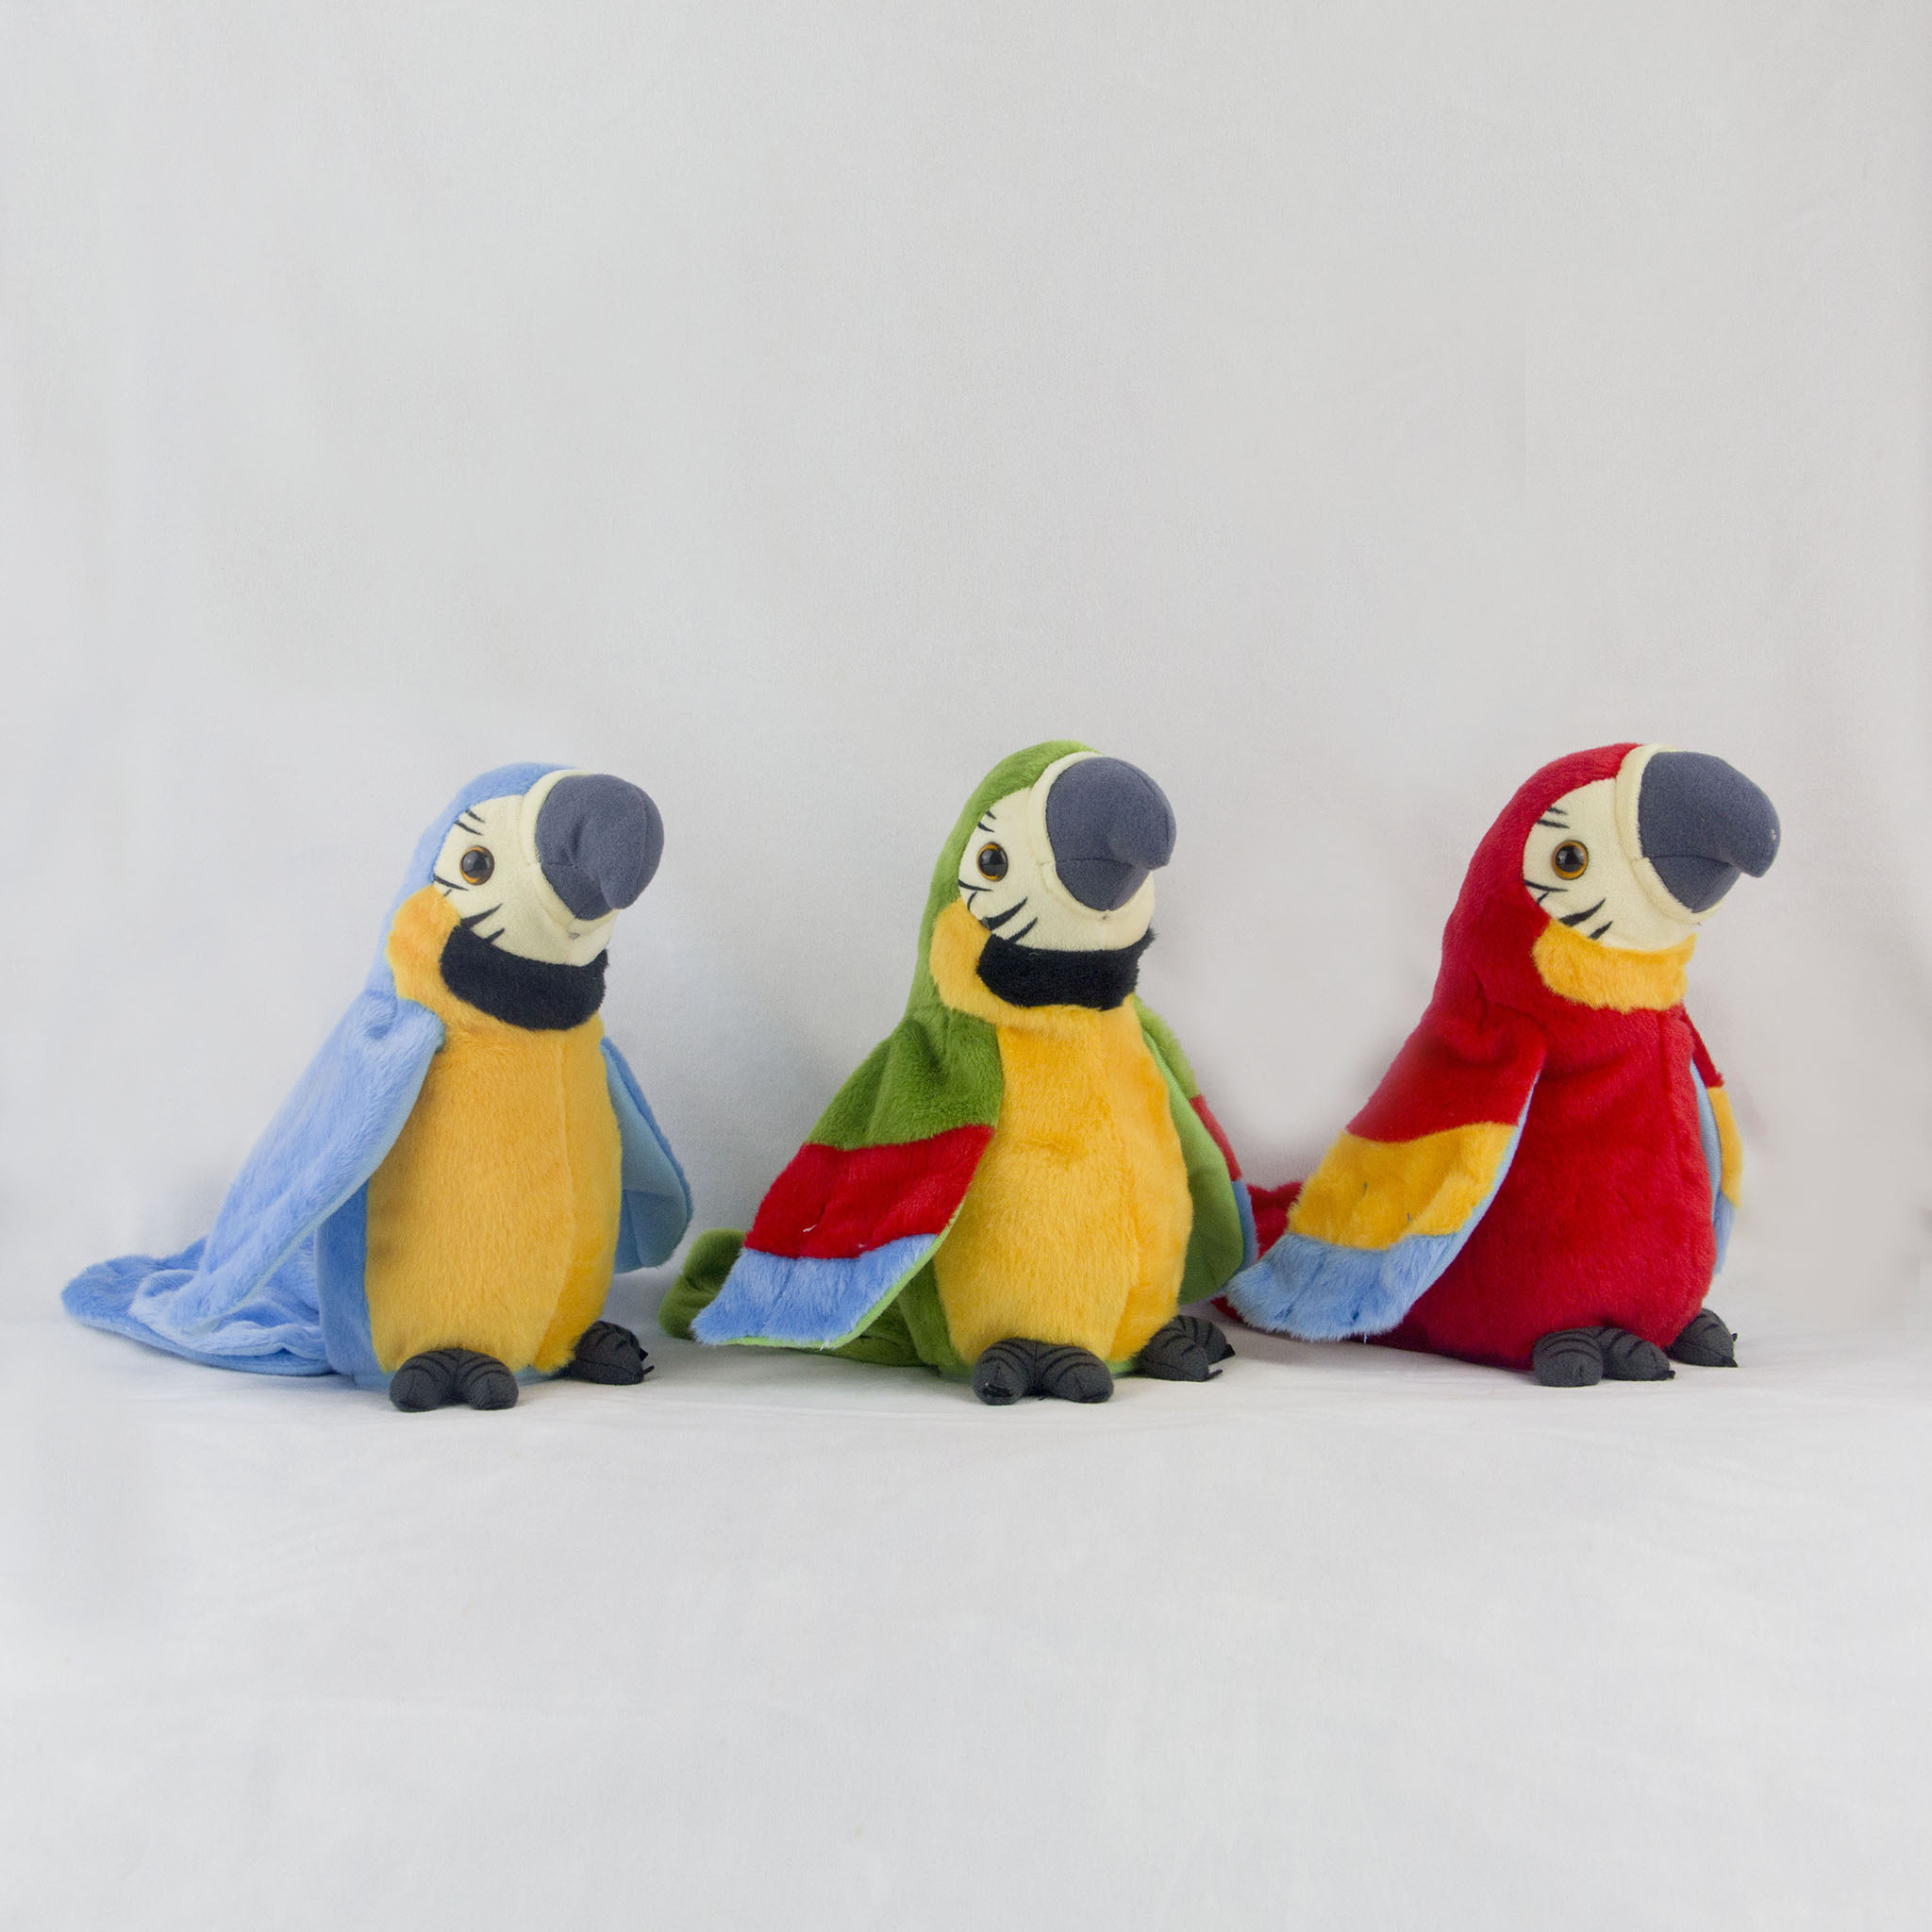 Talking Parrot Speaking Record Repeats Plush Electric Soud Control Toys Stuffed Doll Kids Birthday Gift